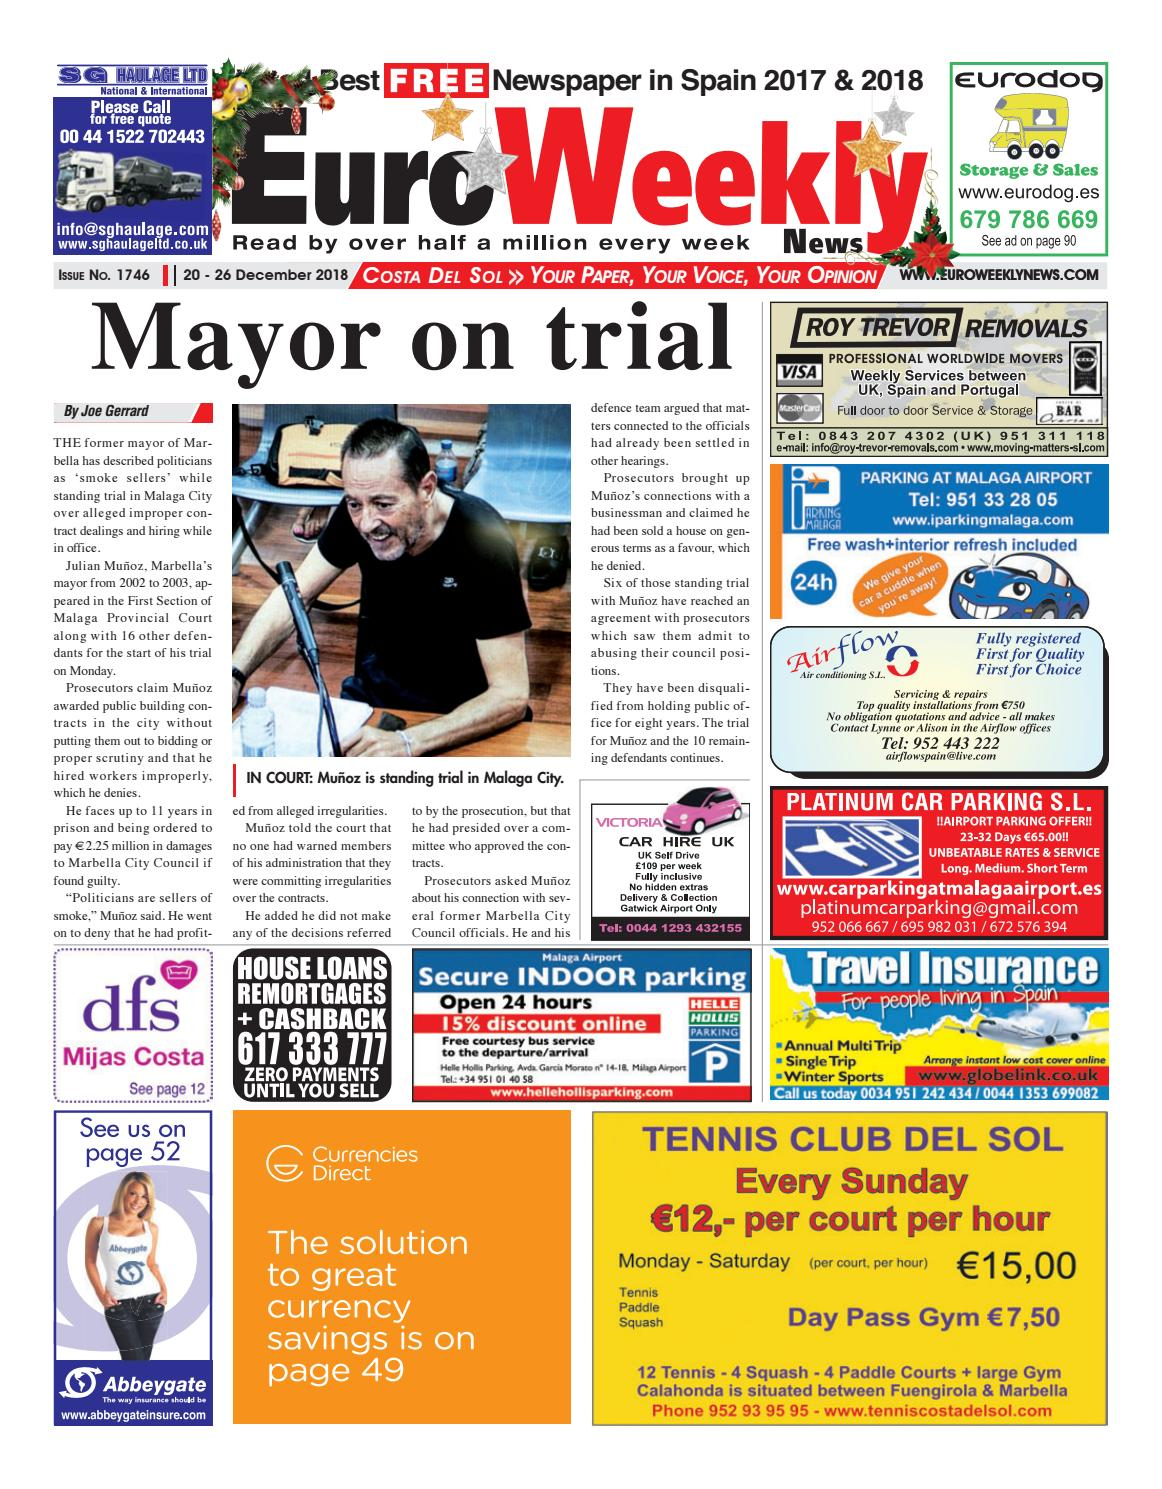 9746985b22f Euro Weekly News - Costa del Sol 20-26 December 2018 Issue 1746 by Euro  Weekly News Media S.A. - issuu